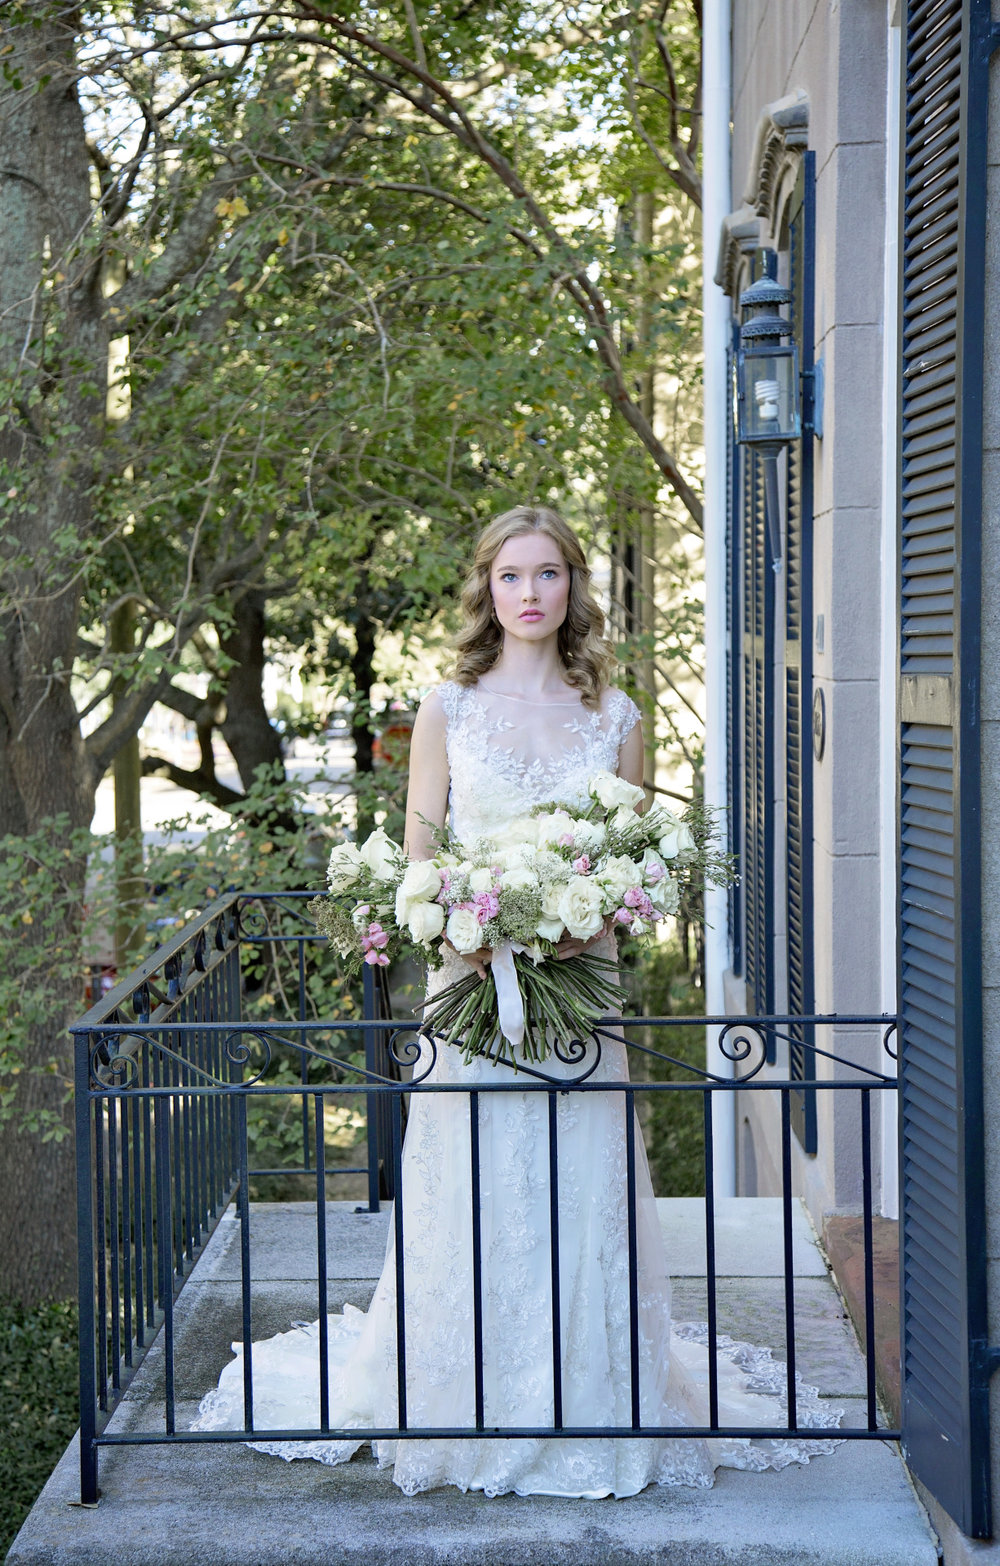 rustik-image-photography-savannah-wedding-photographer-maggie-sottero-tami-savannah-bridal-boutique-ivory-and-beau-bridal-boutique-savannah-wedding-florist-savannah-bridal-shop-savannah-weddings-savannah-gowns-3.jpg